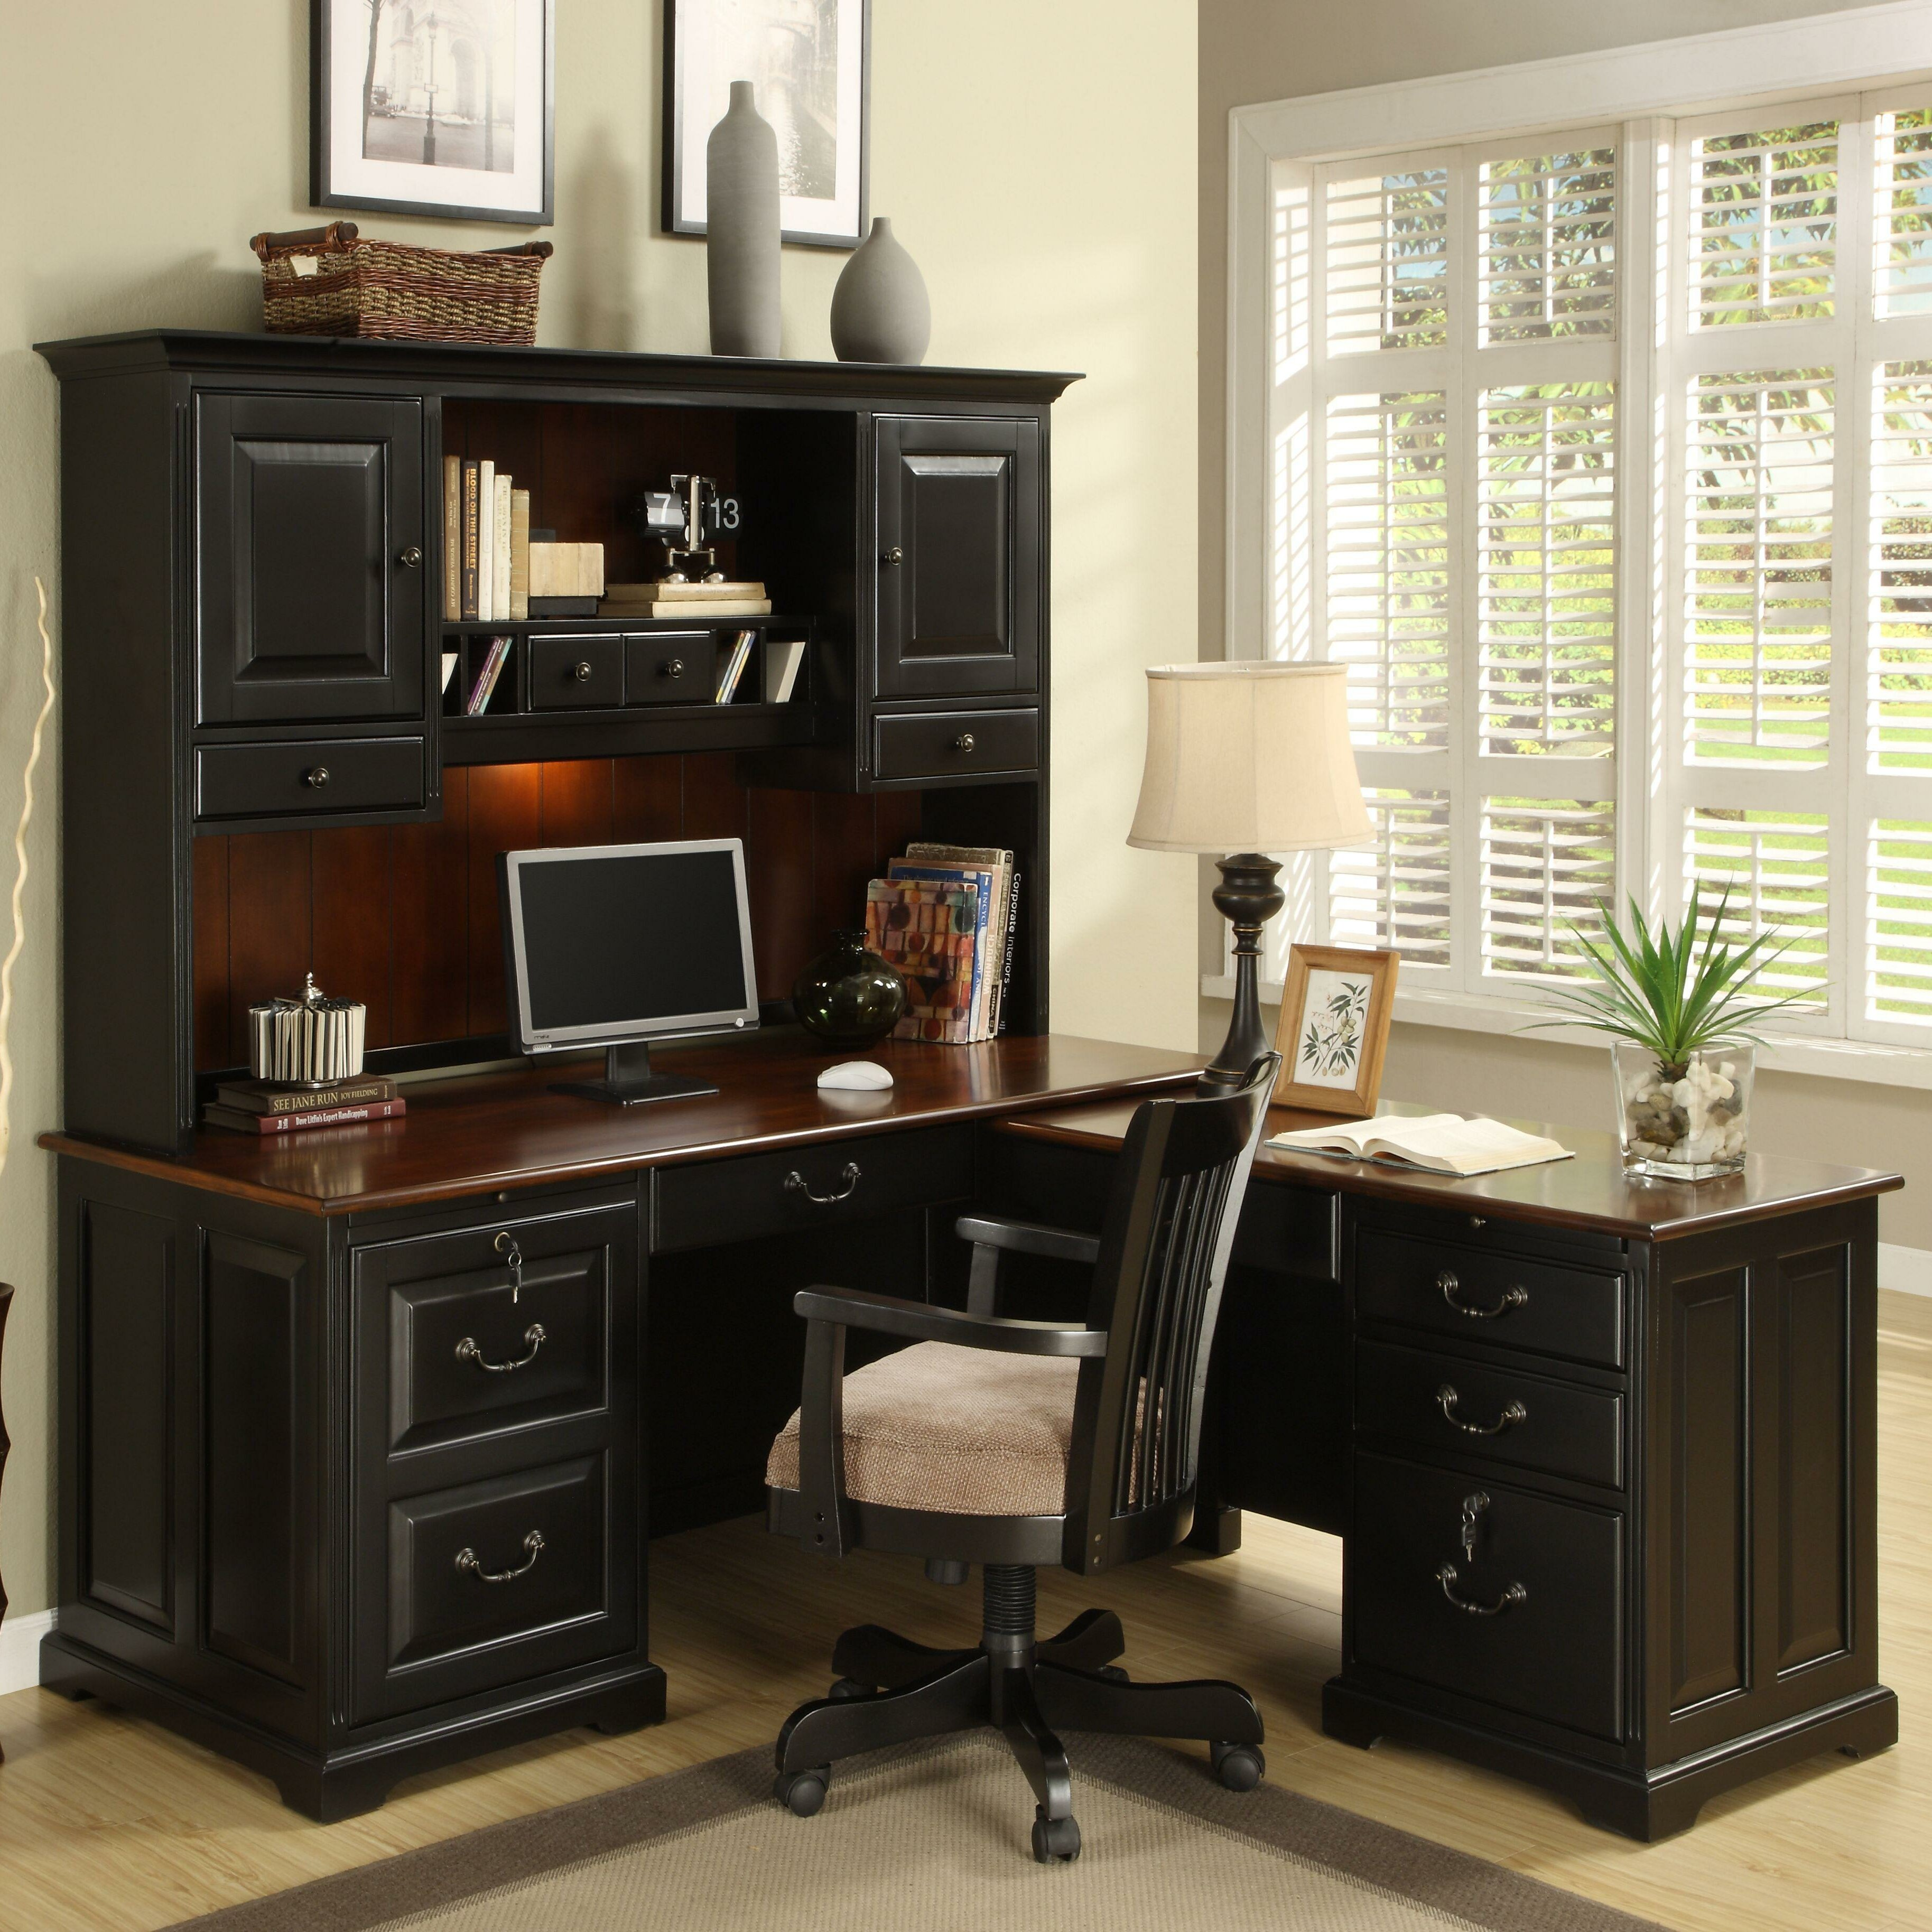 Riverside Furniture Bridgeport 2 Piece L Shape Desk Office Suite Reviews Wayfair